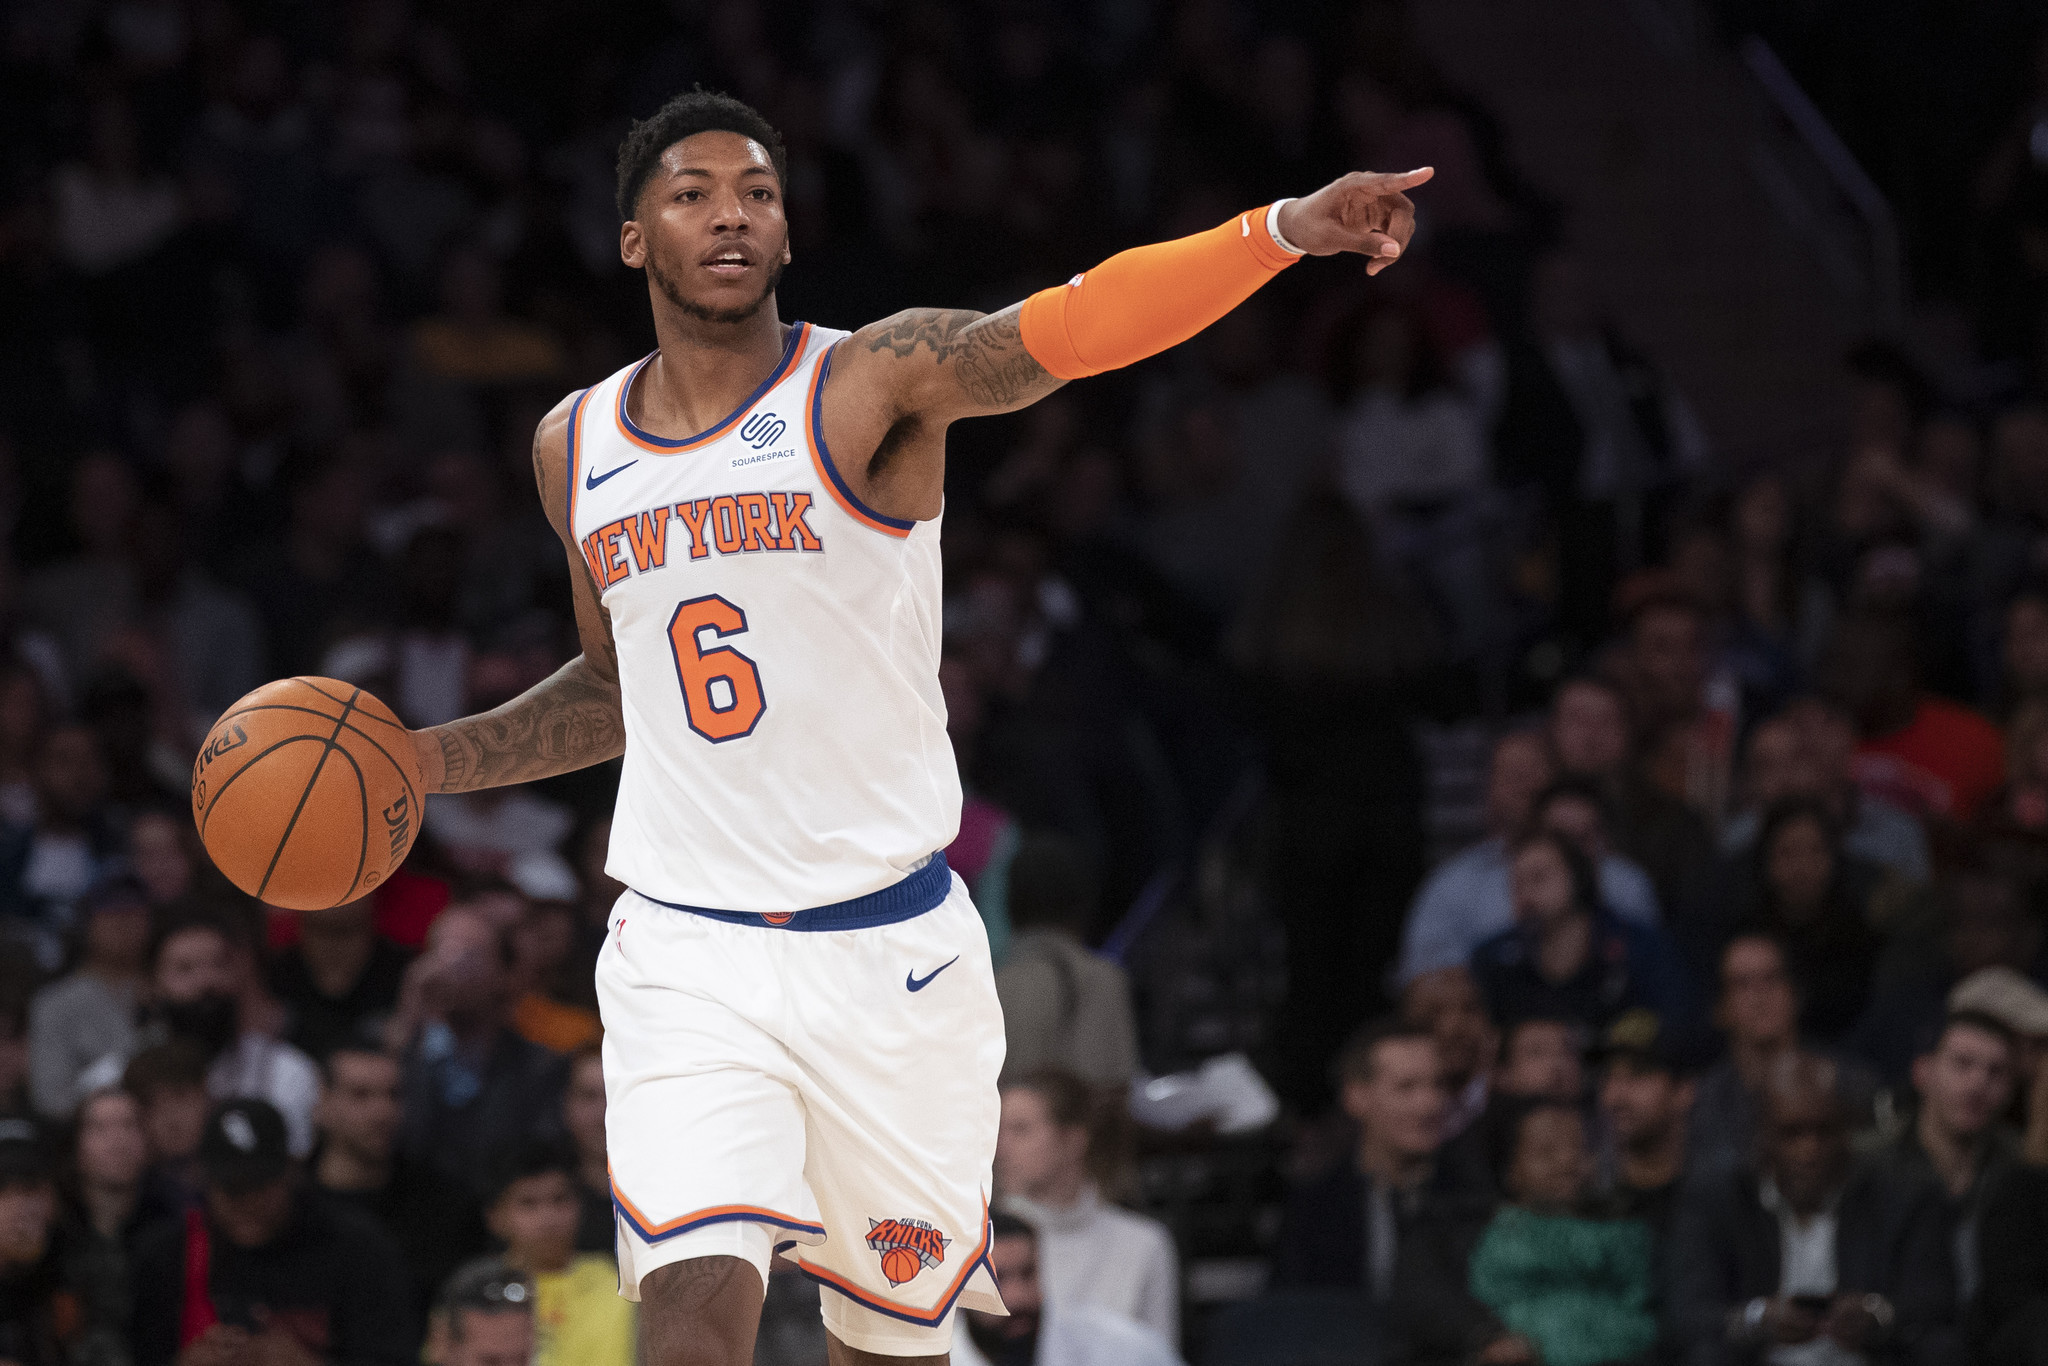 Elfrid Payton's return give the Knicks another much-needed option at point guard